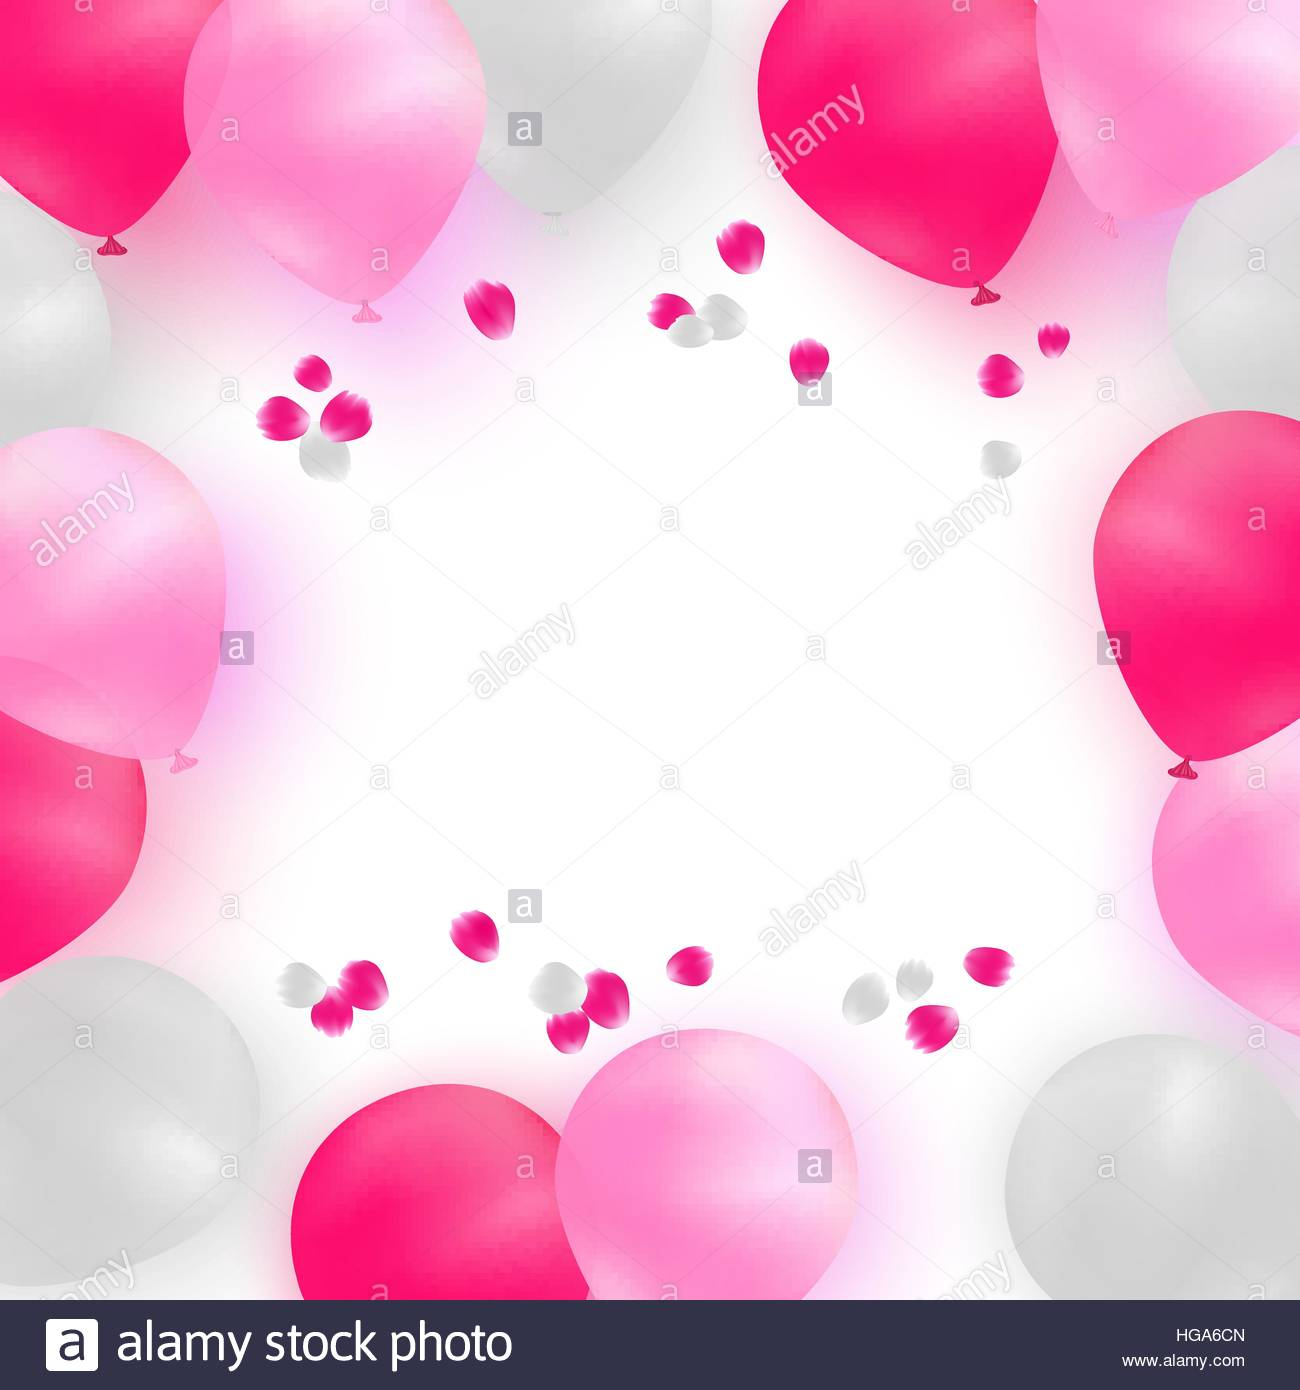 birthday pink background ; greeting-card-template-for-wedding-birthday-mothers-day-white-and-HGA6CN